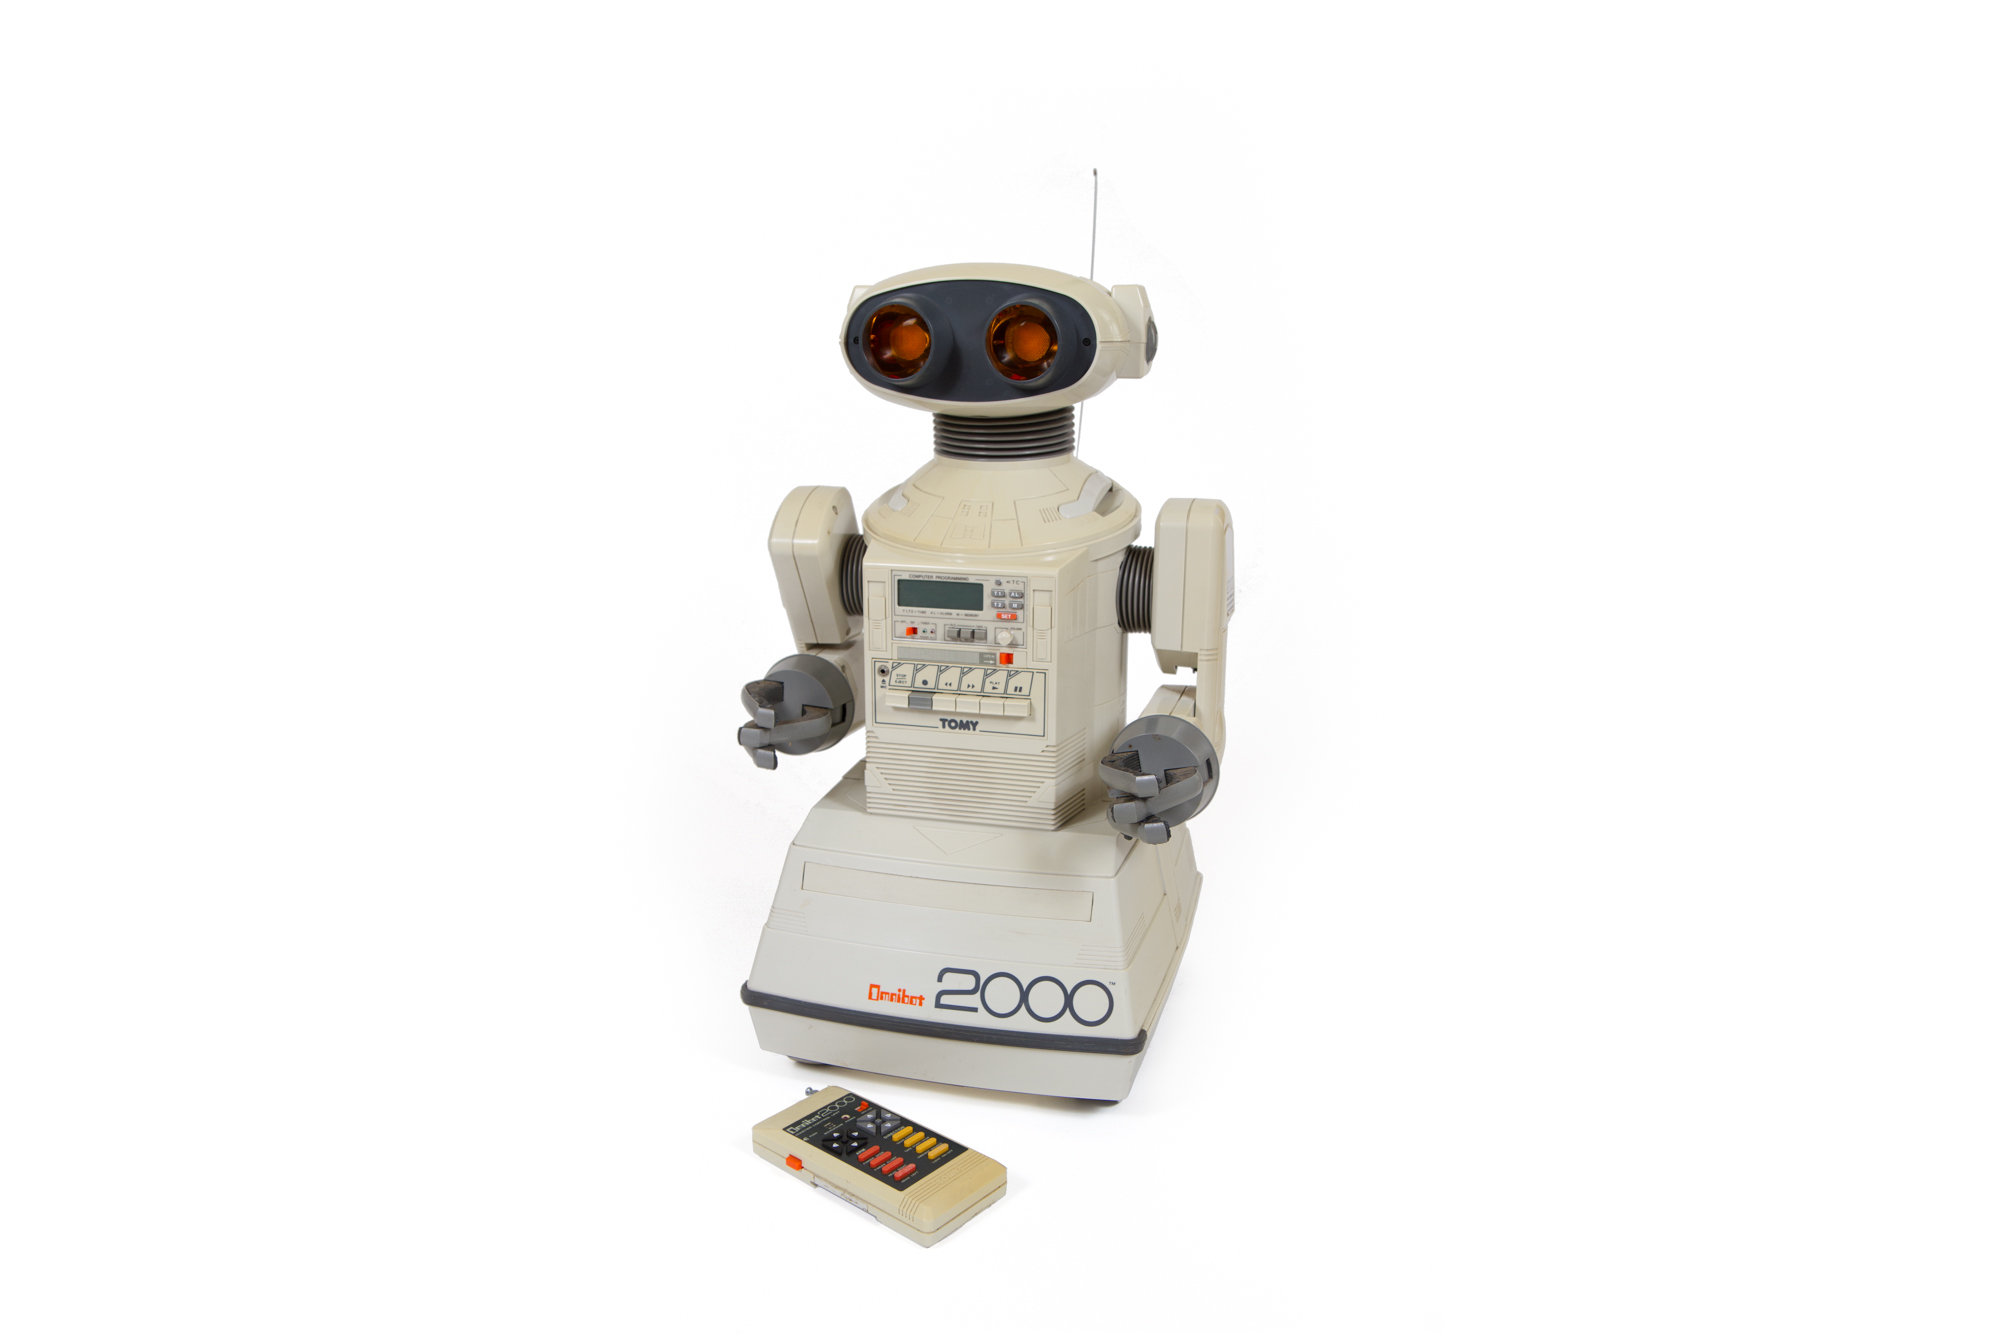 Omnibot 2000 Remote Controlled Robot (Tomy, Japan circa 1985) - Height 2'0""